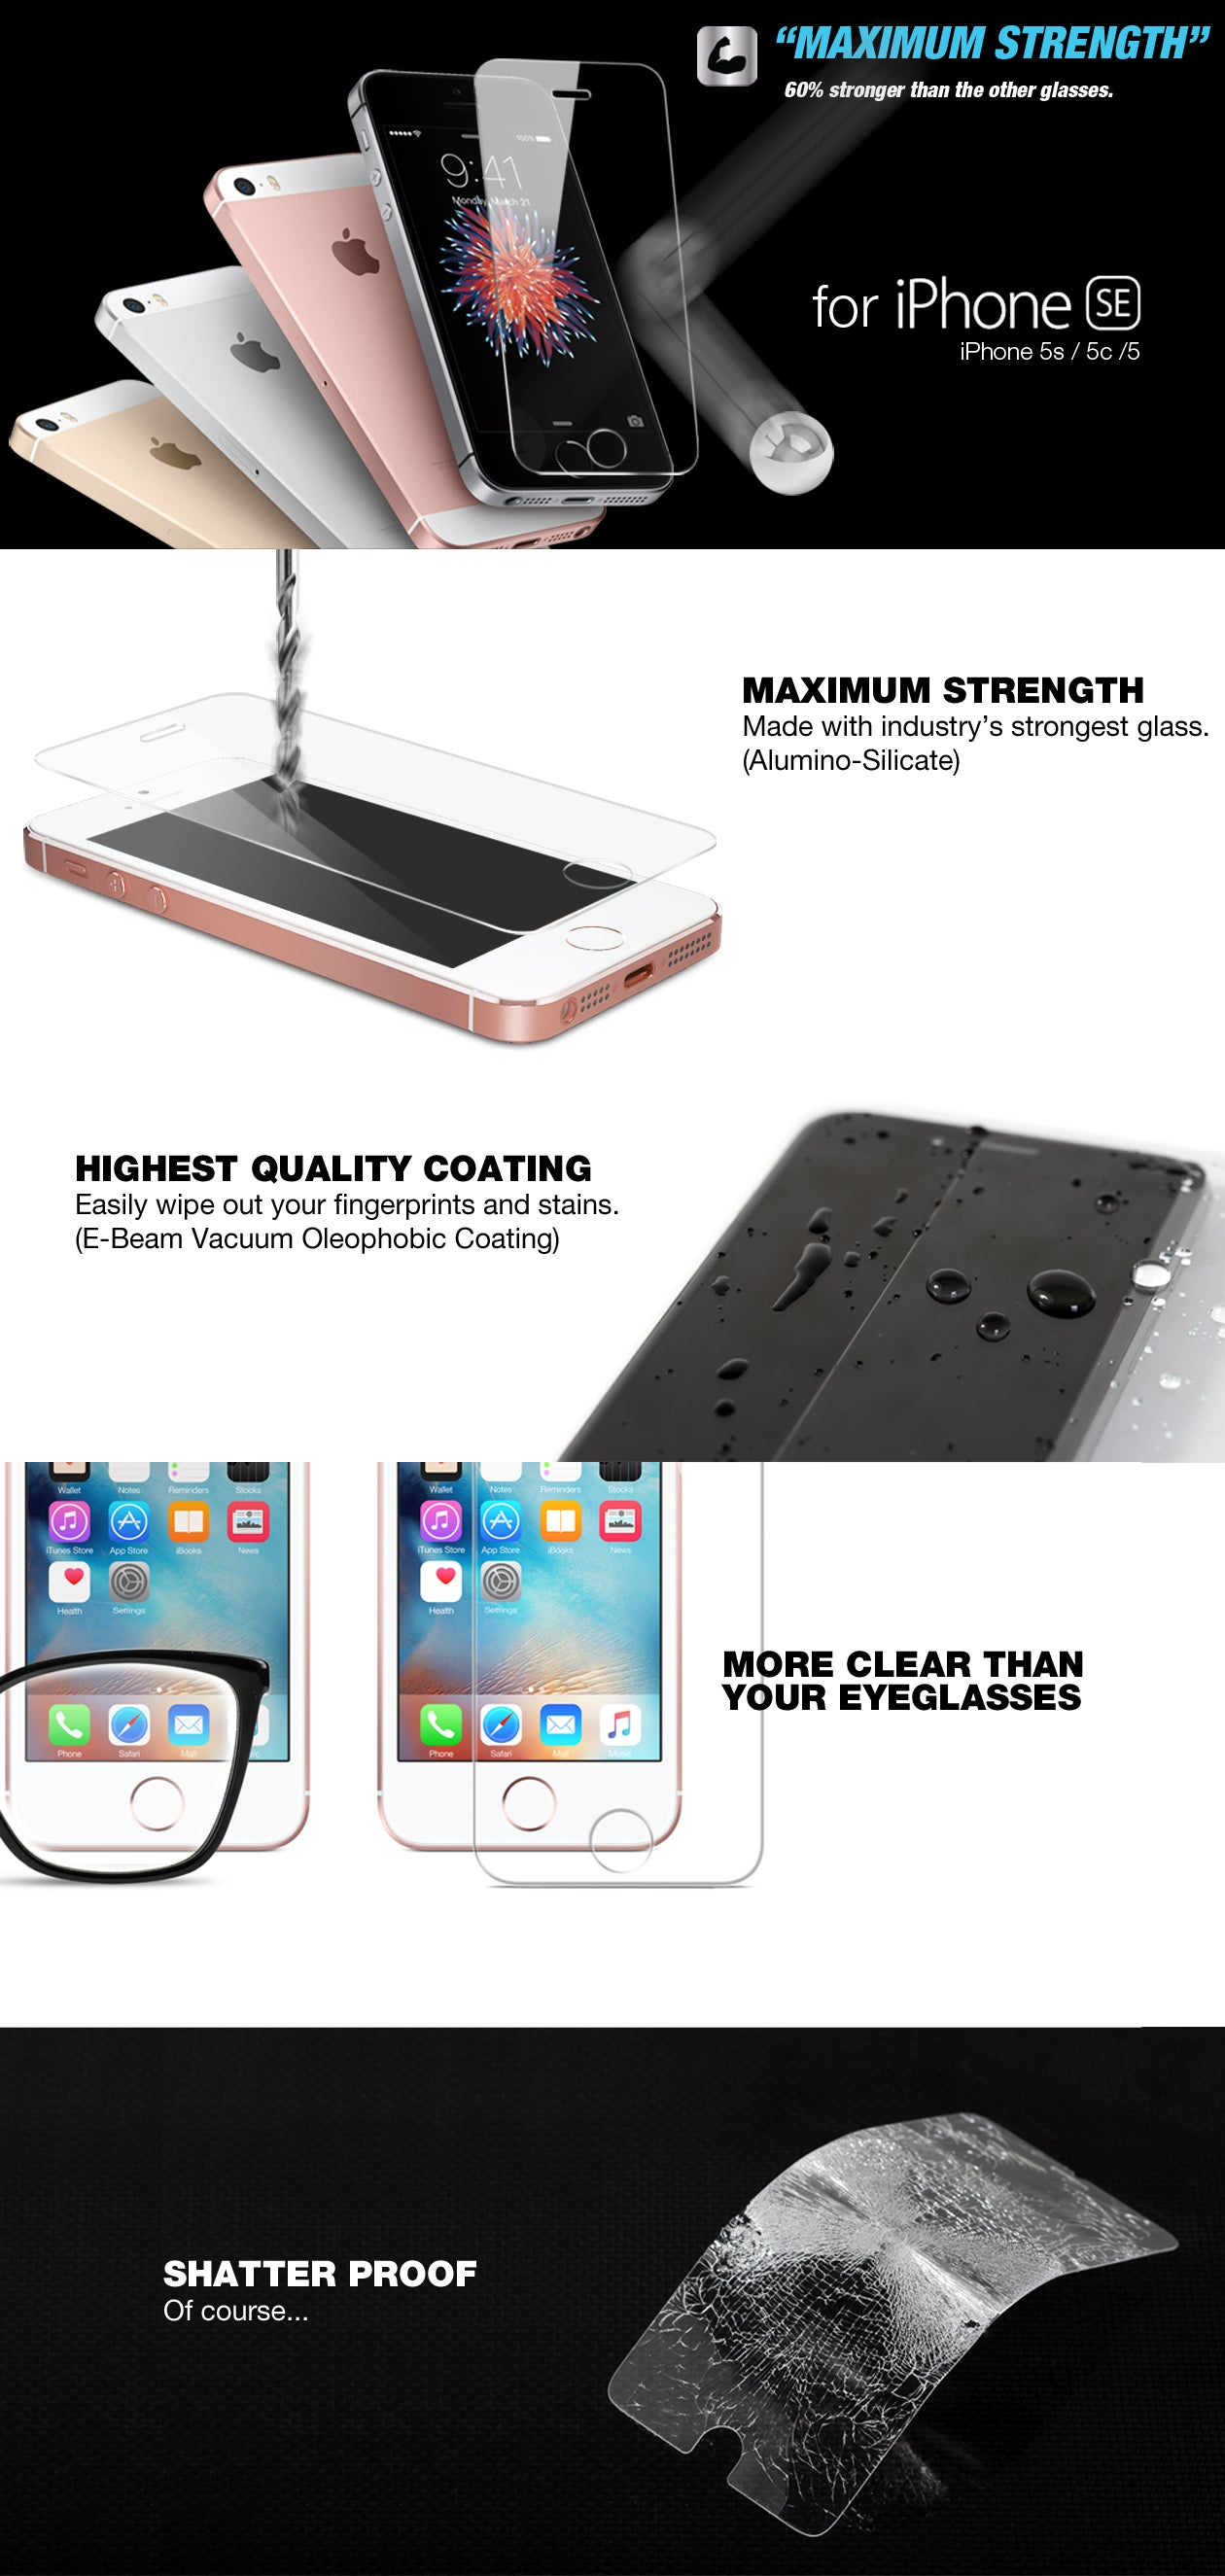 iPHONE SE / iPhone 5s / 5 / 5c GLASS SCREEN PROTECTOR ITG